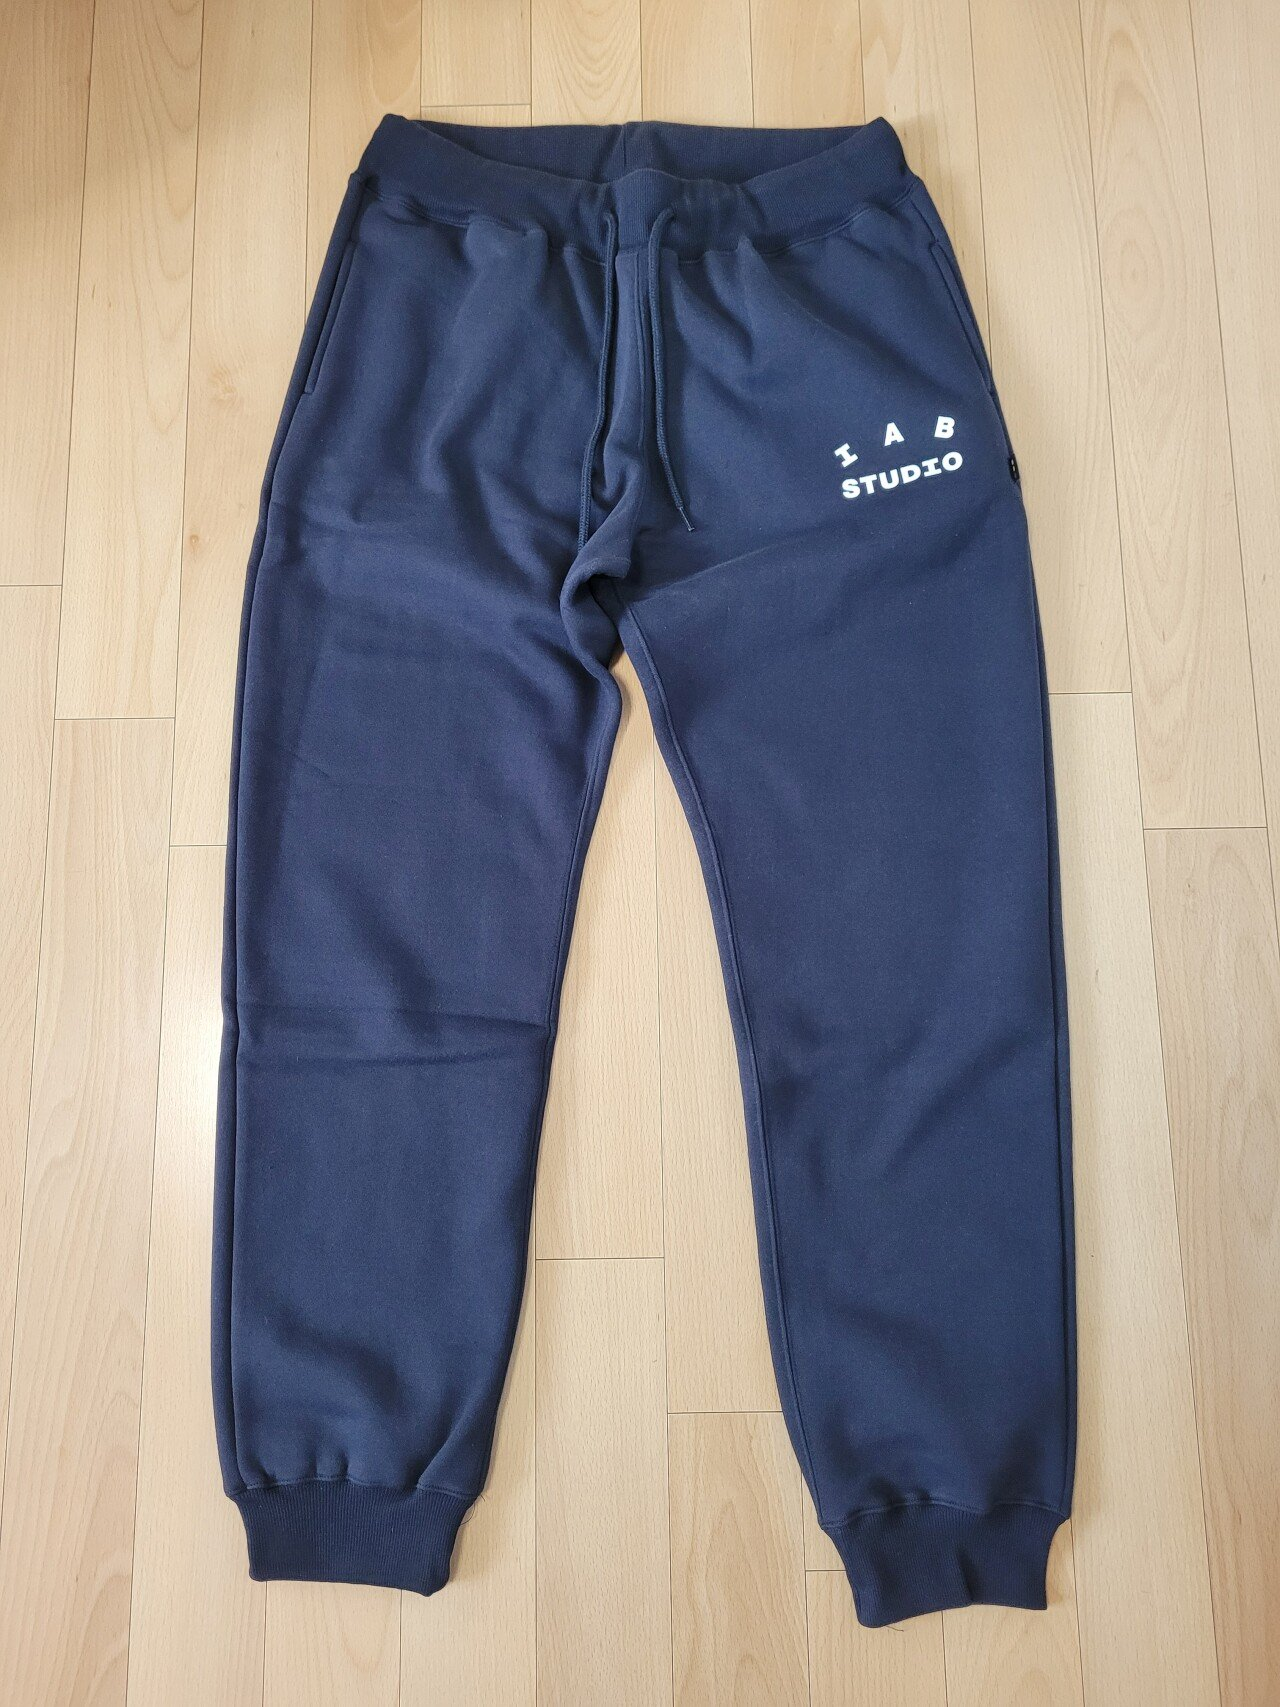 20210218_154652.jpg IAB Studio Sweat Pant Navy (21ss)